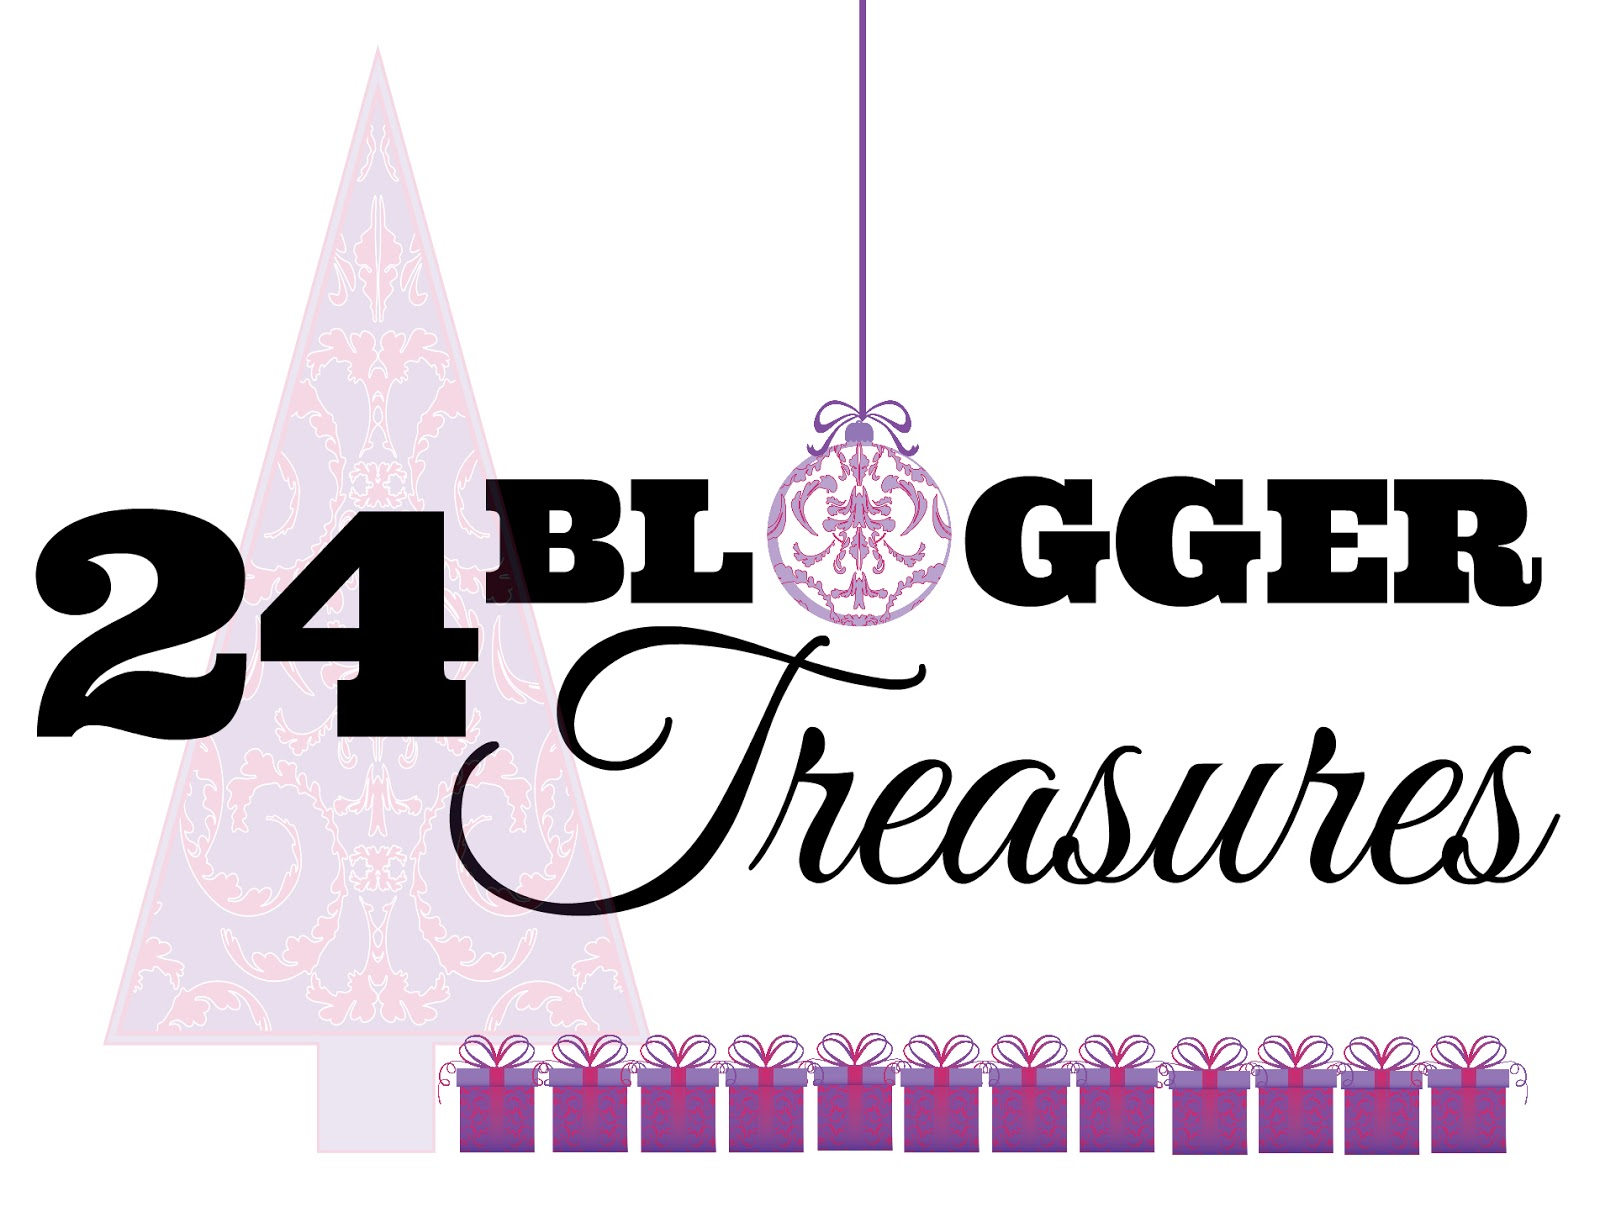 24 blogger treasures Adventskalender 2014